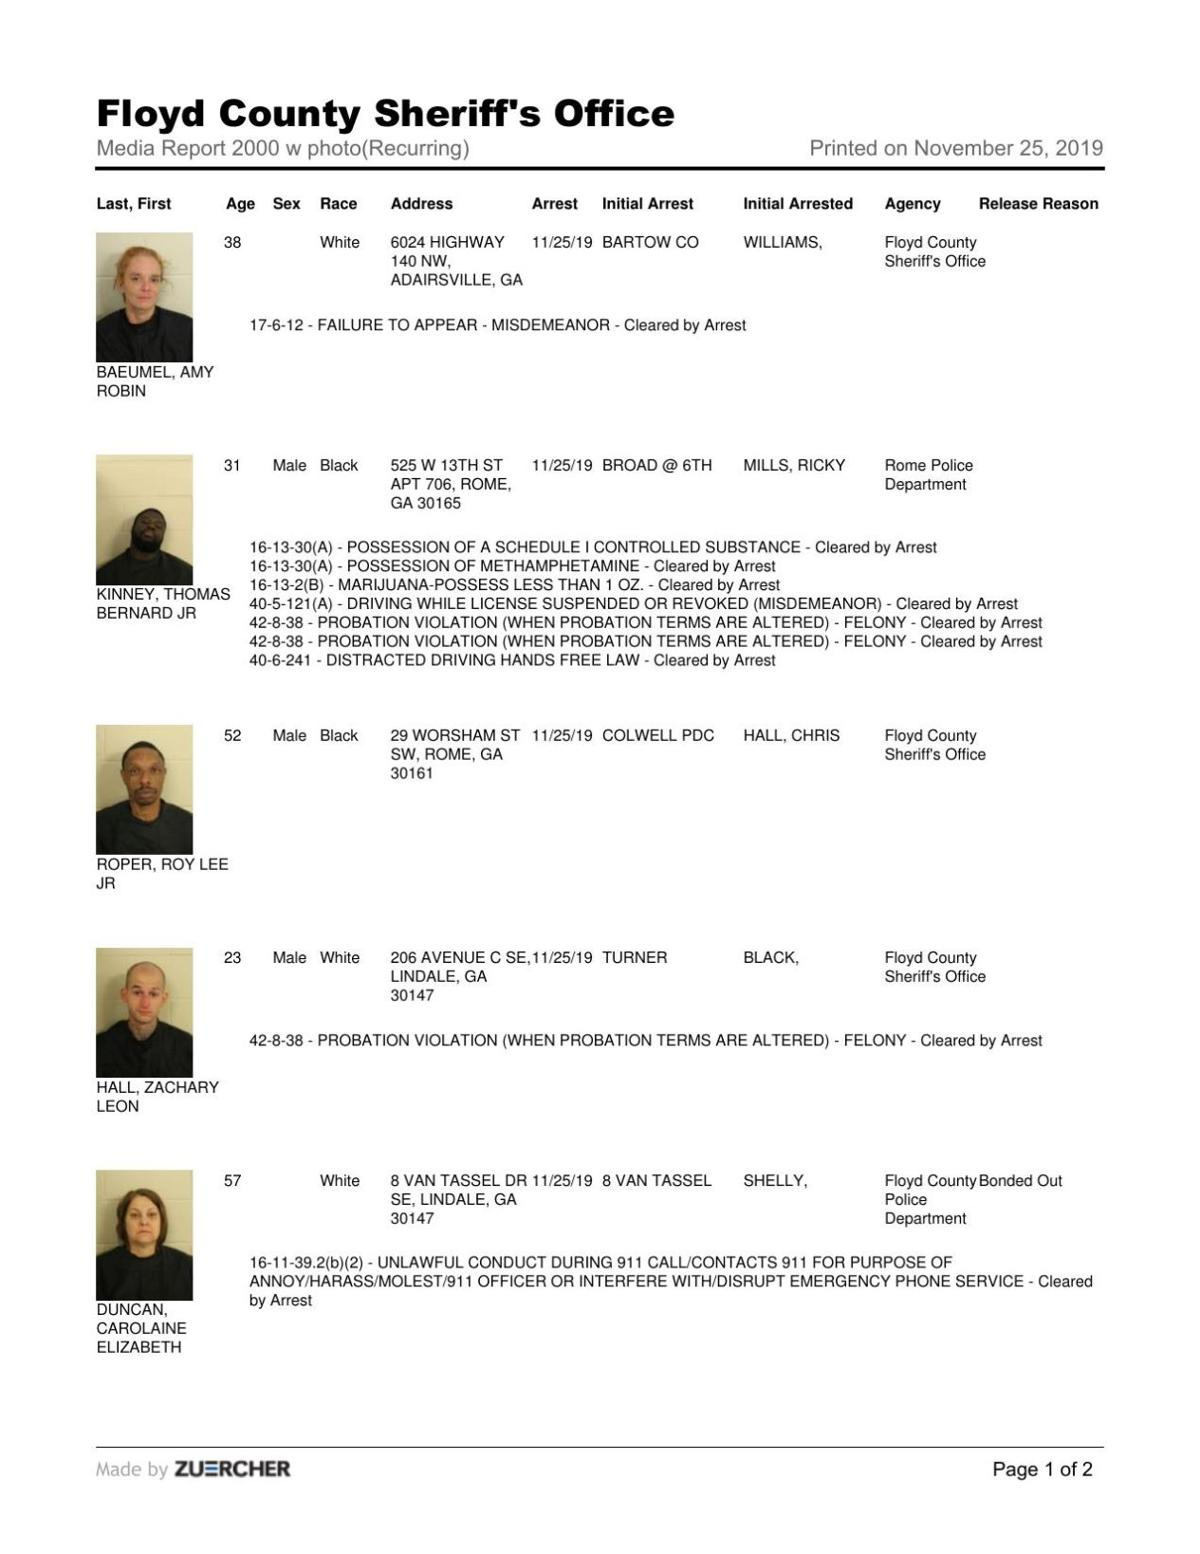 Floyd County Jail report for Monday, Nov. 25